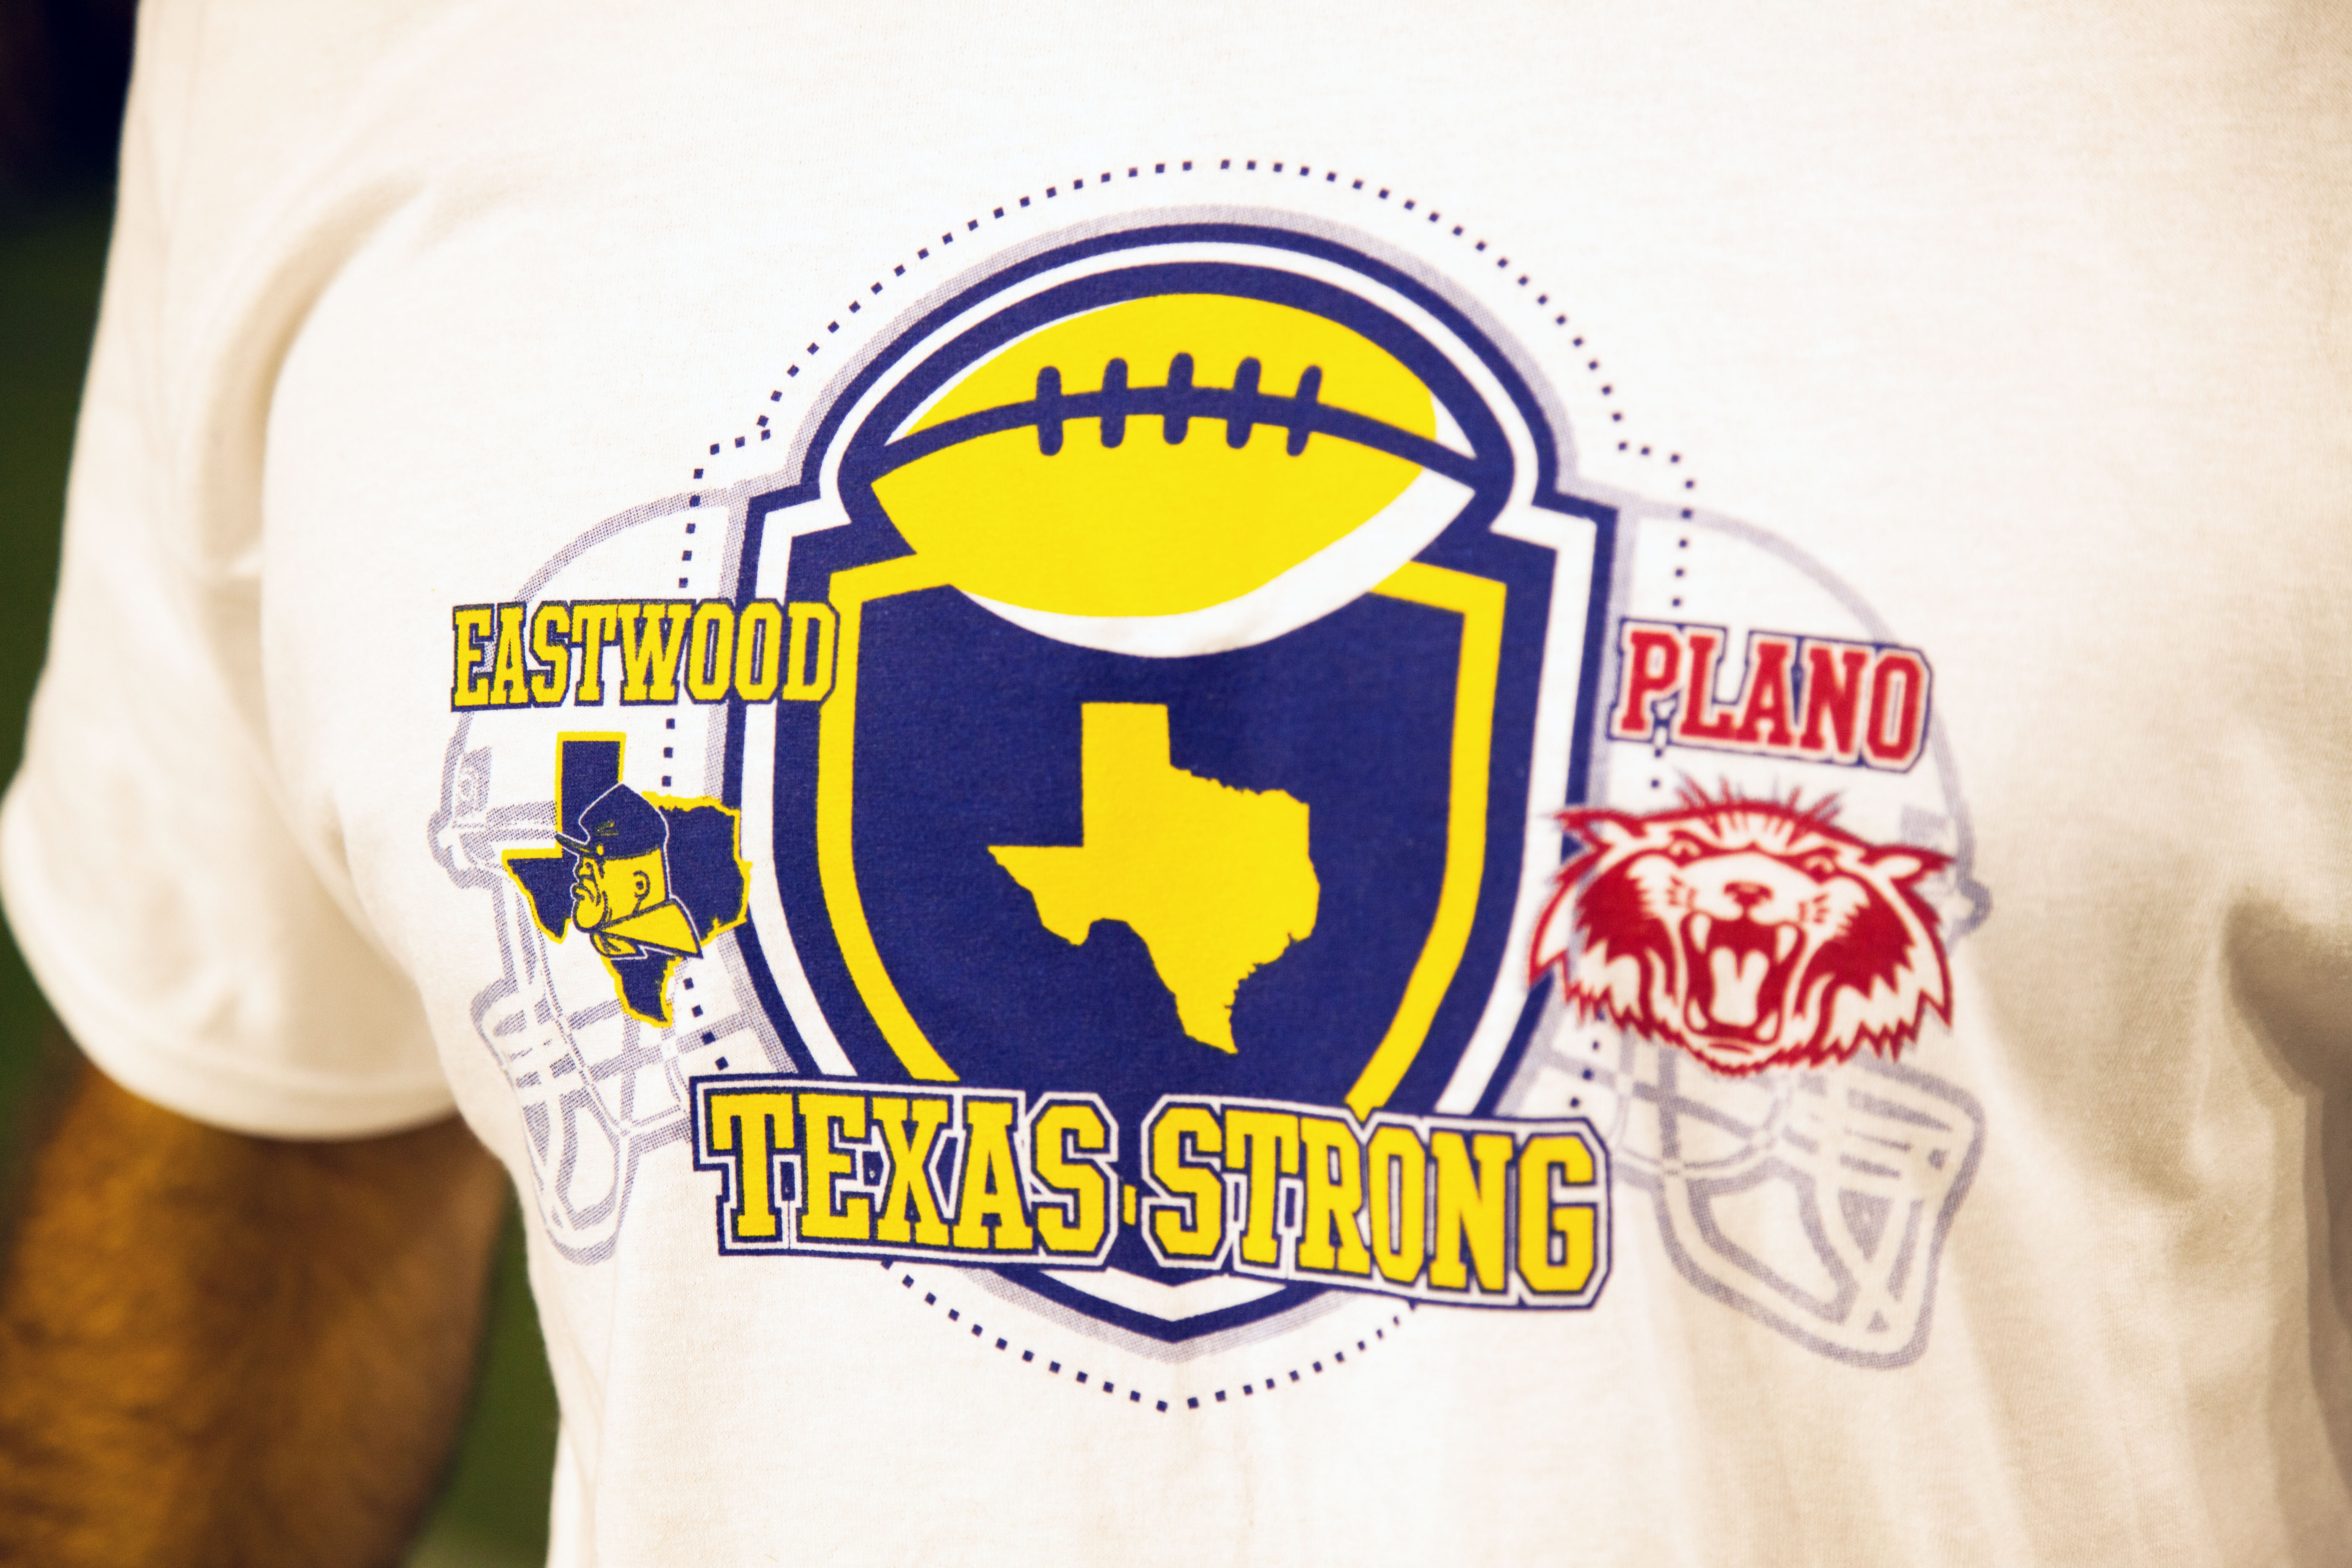 Eastwood HS  - Texas Strong - Plano SHS  T-shirt